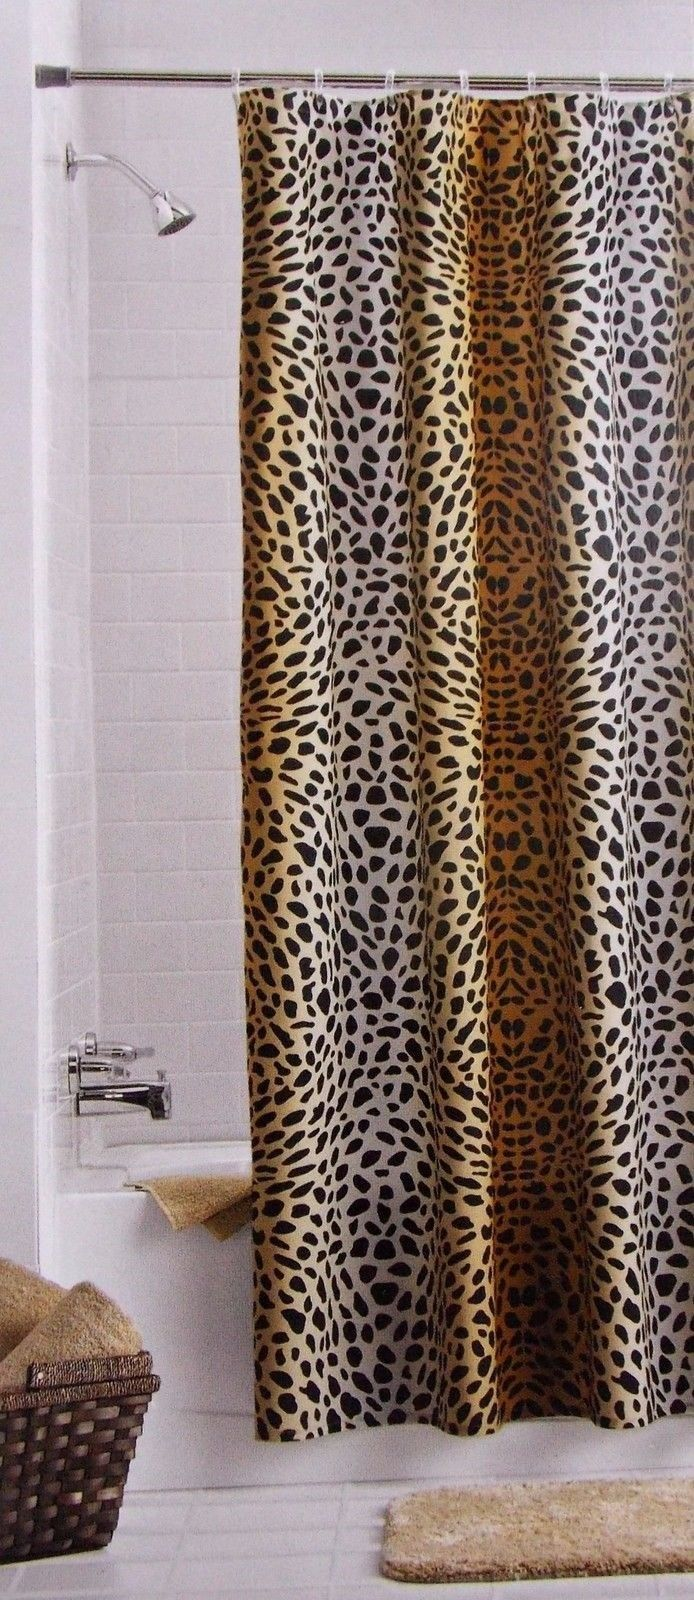 Cheetah Fabric Shower Curtain 70x72 Ombre And 50 Similar Items